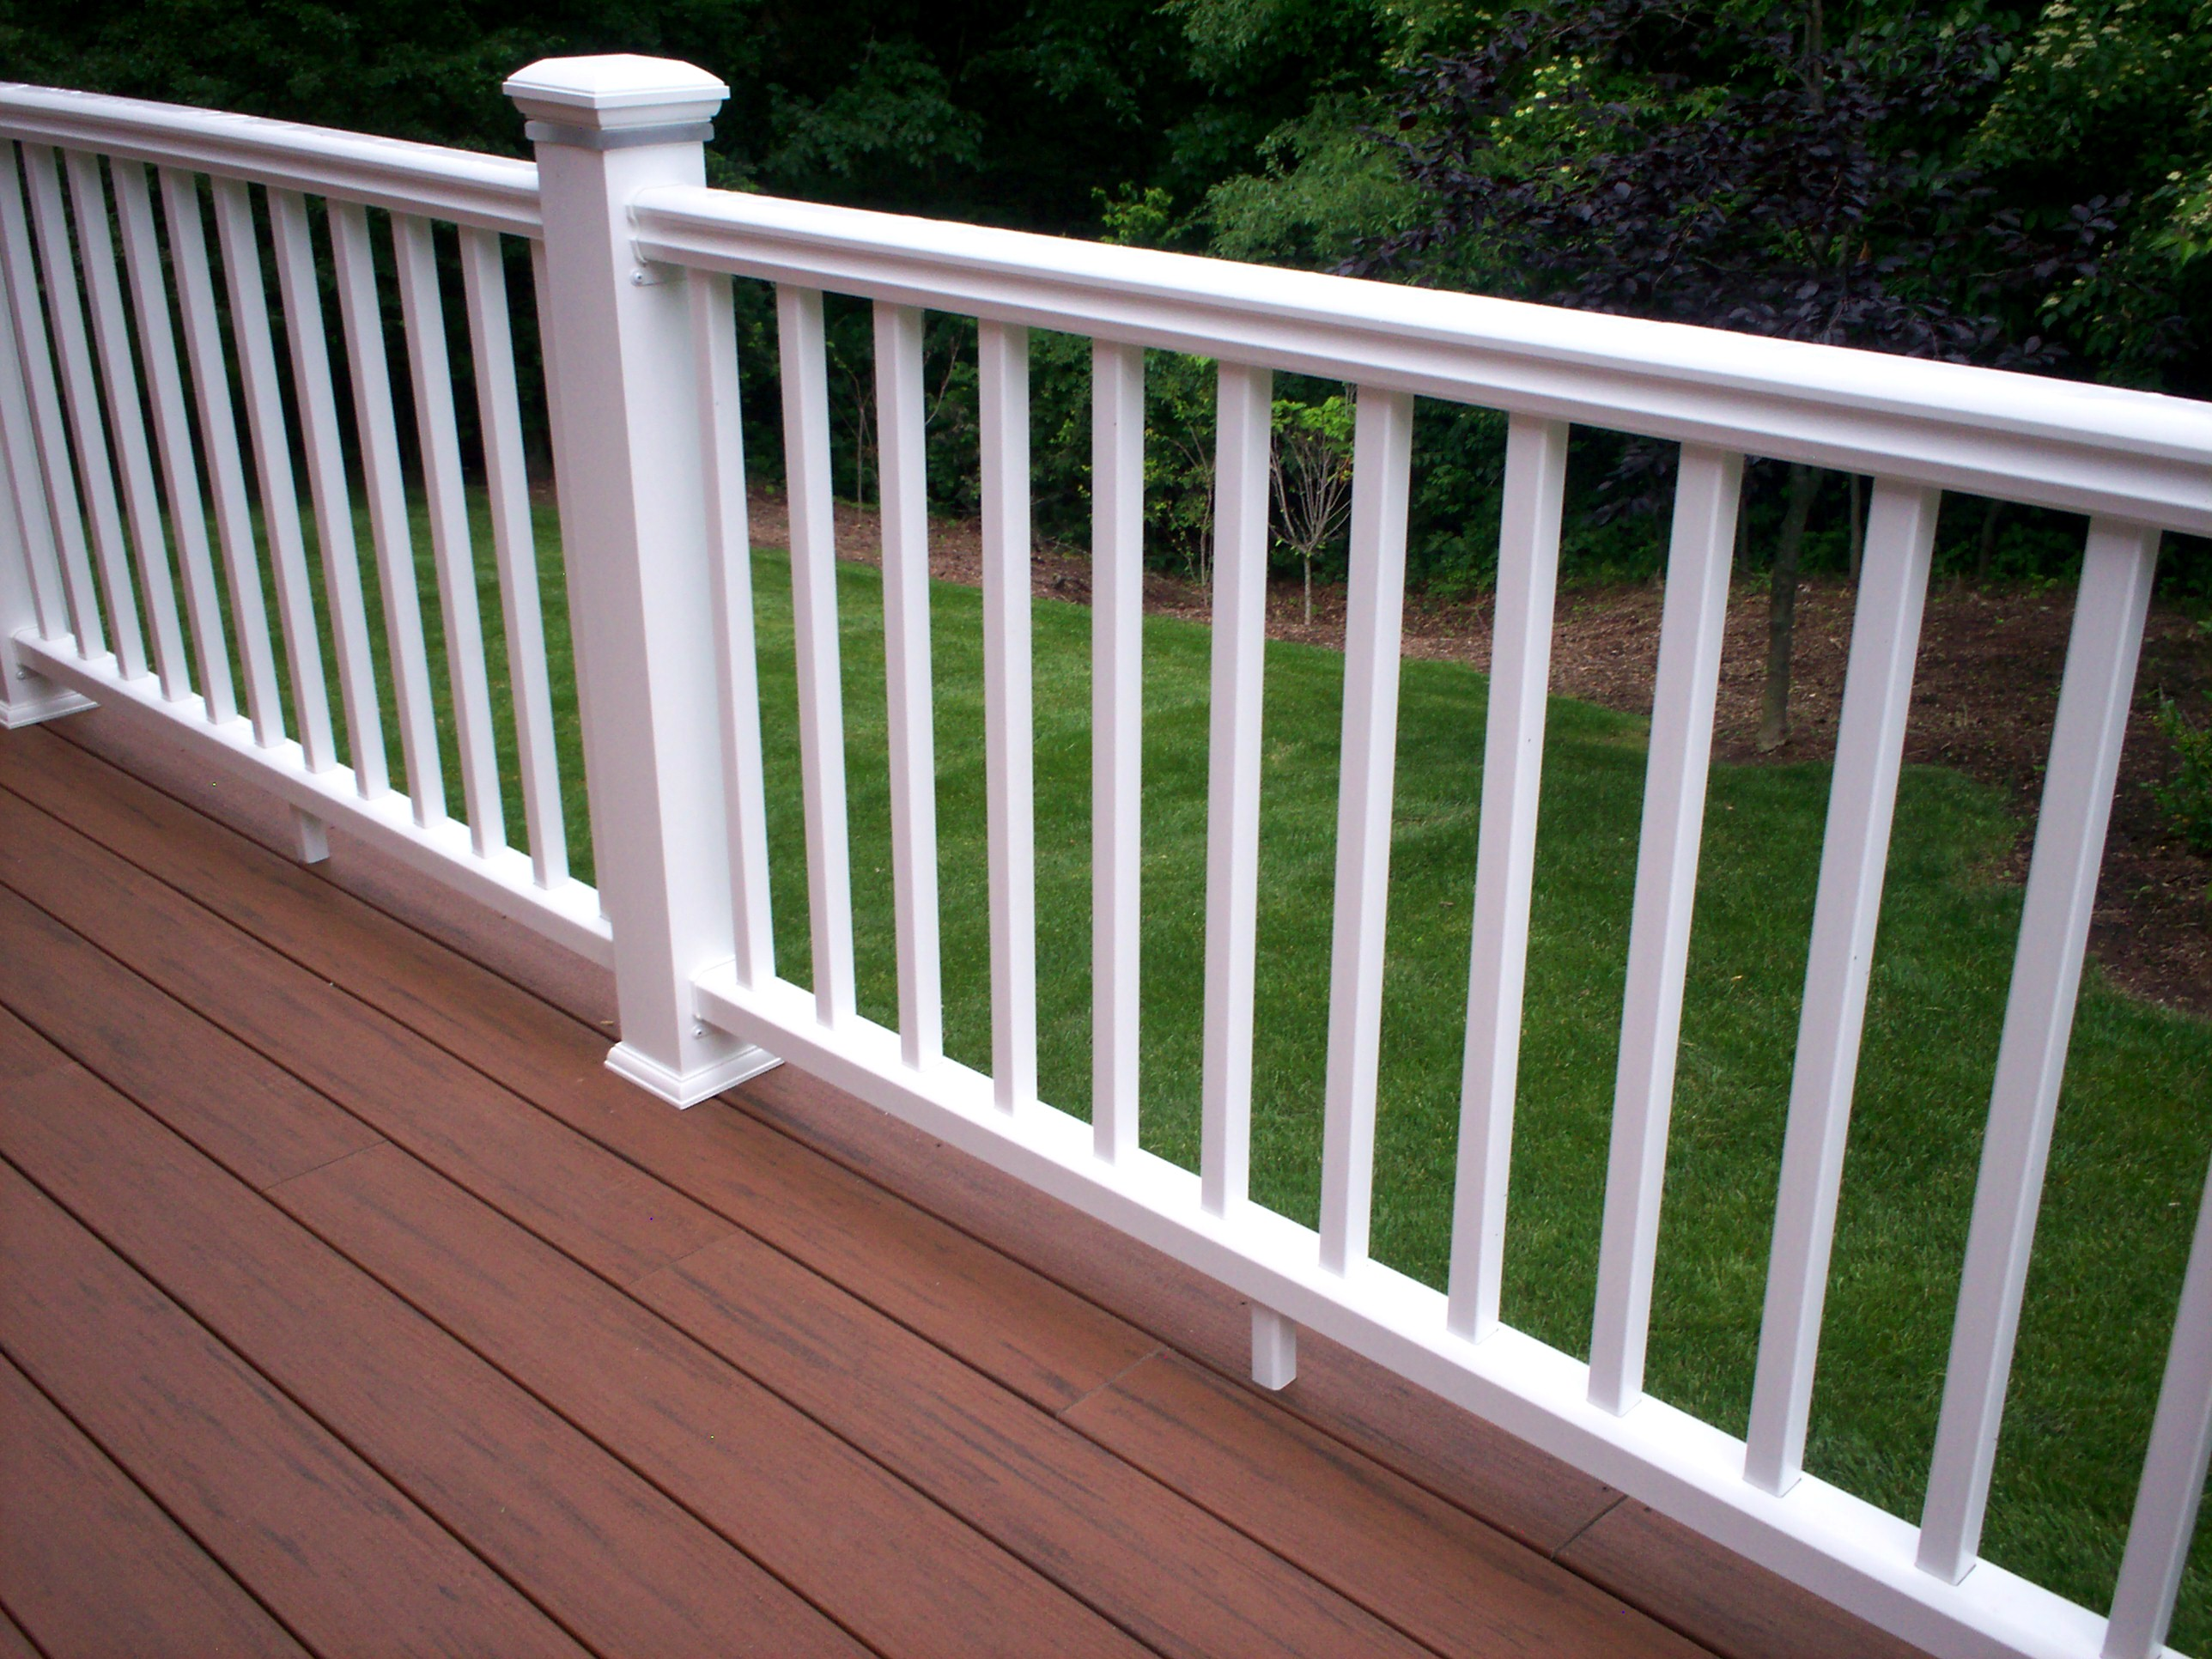 Timbertech decking why we love it and you should too for Brown treated deck boards